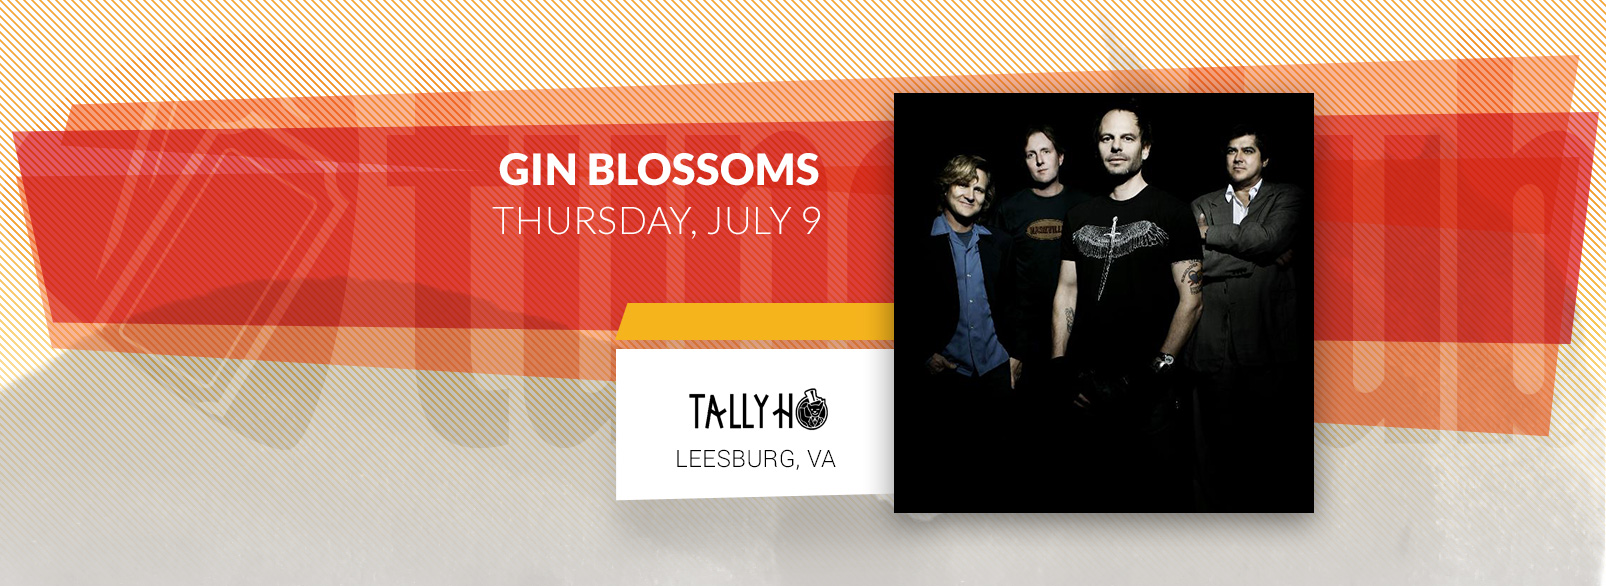 Gin Blossoms @ Tally Ho Theatre